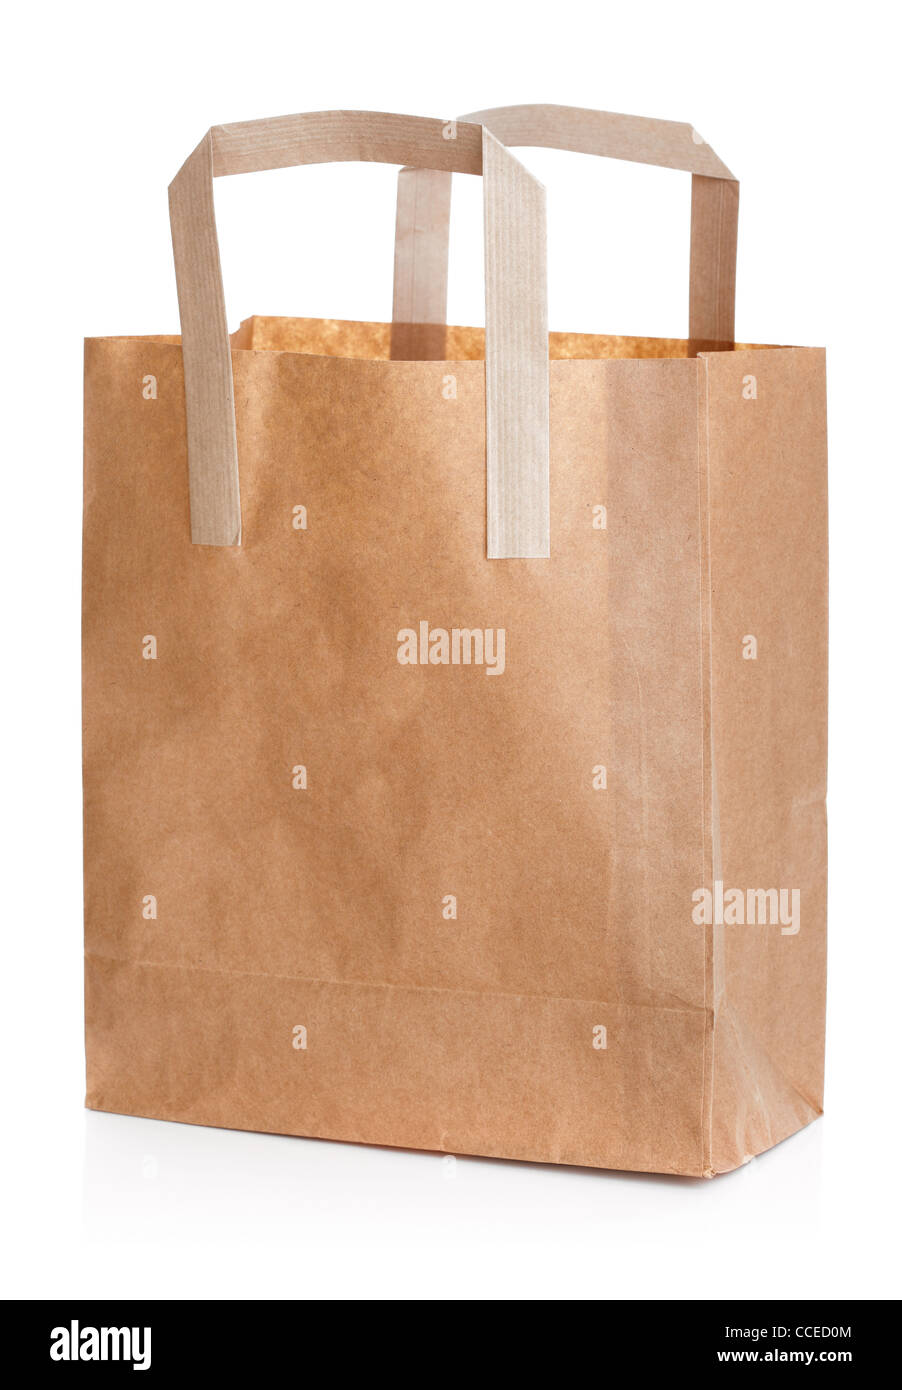 Recycled brown paper shopping bag - Stock Image